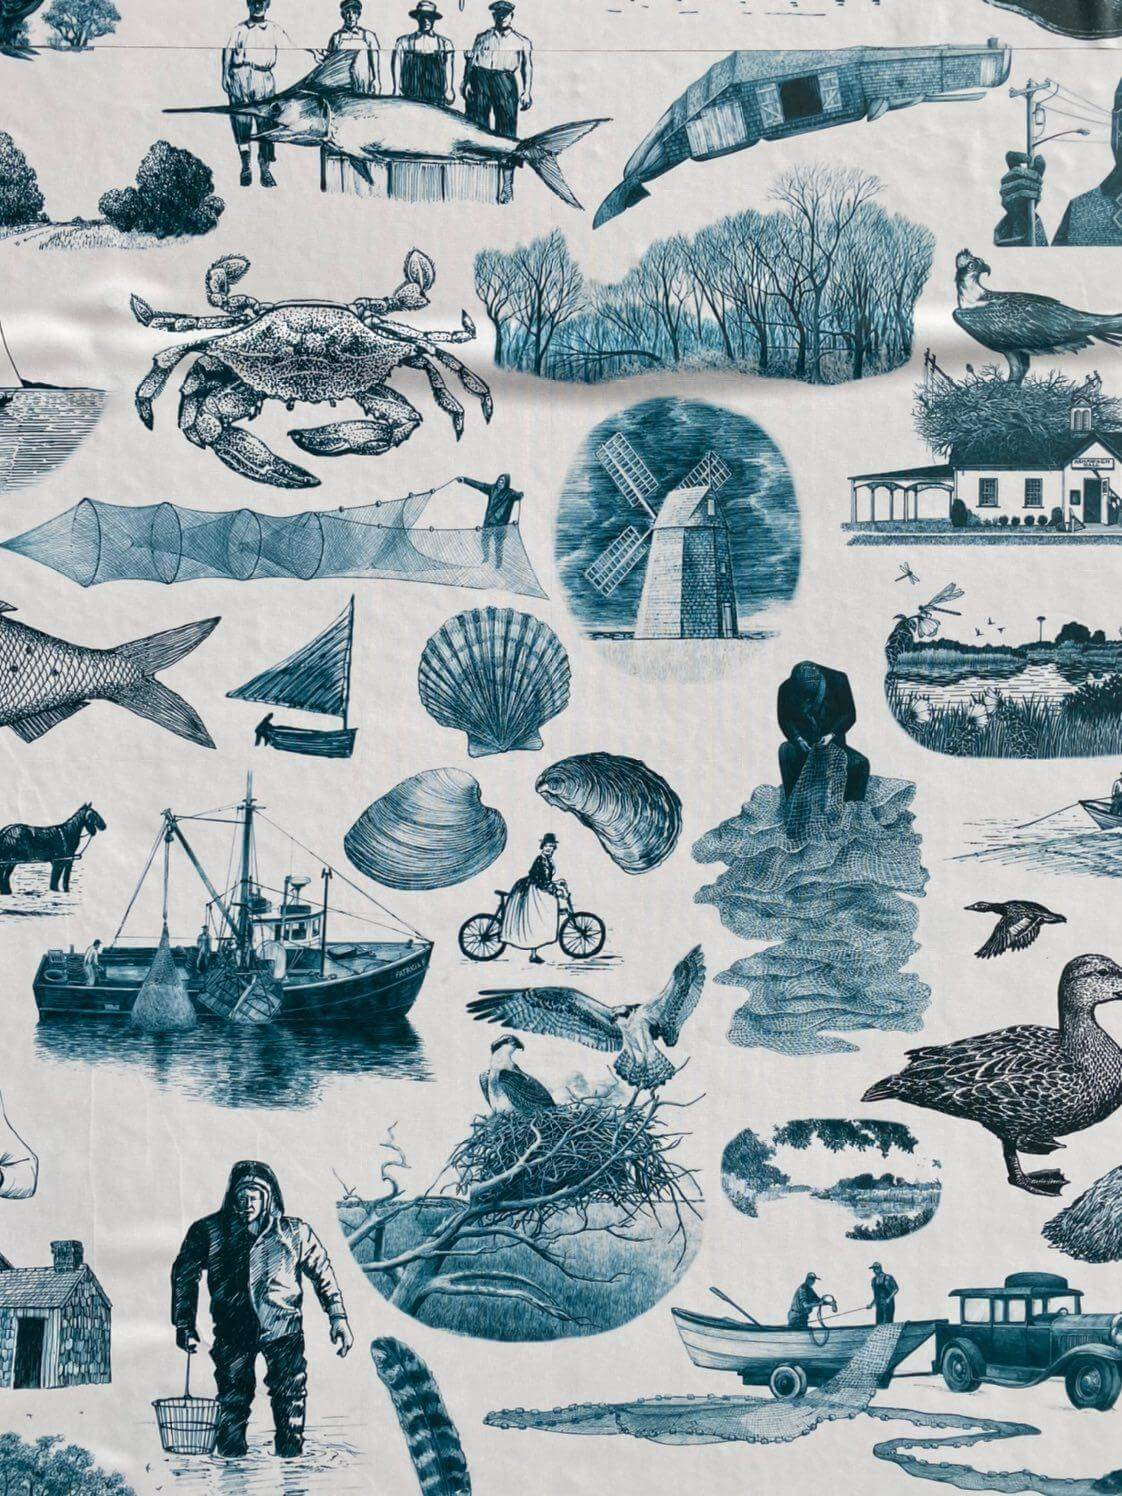 toile wallpaper depicting traditional life in the hamptons, part of bonac blind